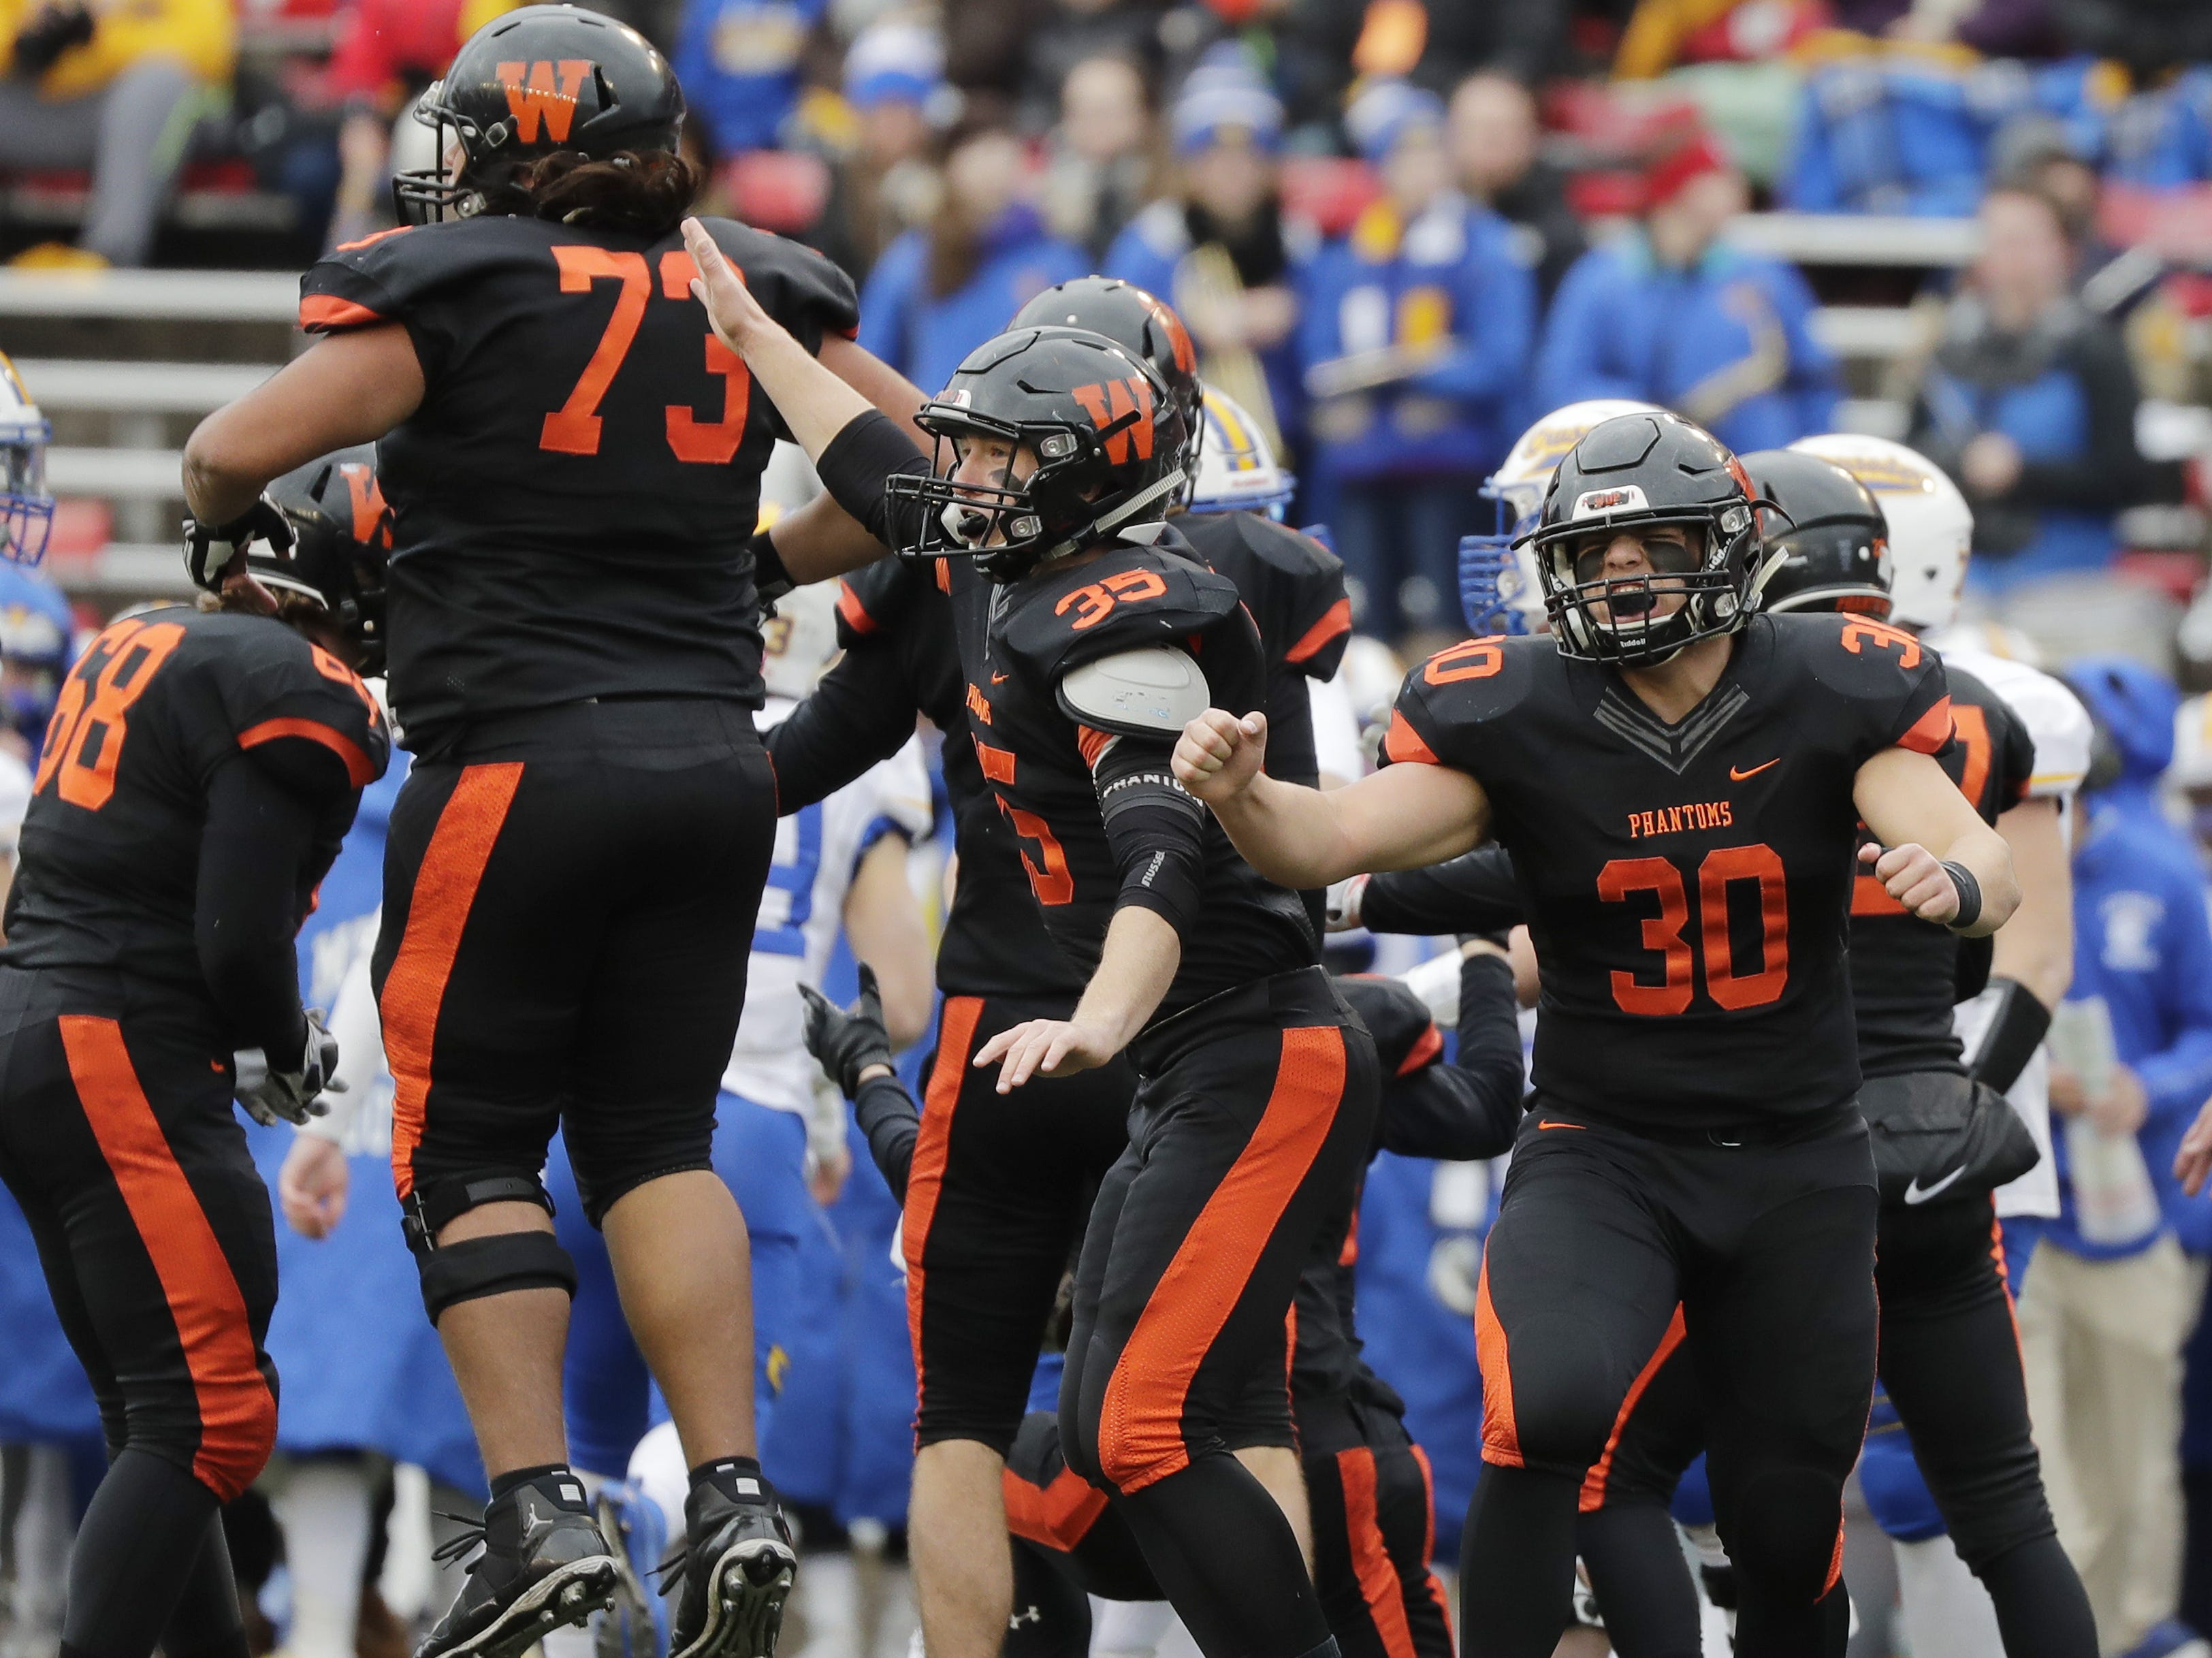 West De Pere's Cody Cavil (30) reacts as the Phantoms recovered a fumble by Catholic Memorial in the WIAA Division 3 championship game at Camp Randall Stadium on Friday, November 16, 2018 in Madison, Wis.